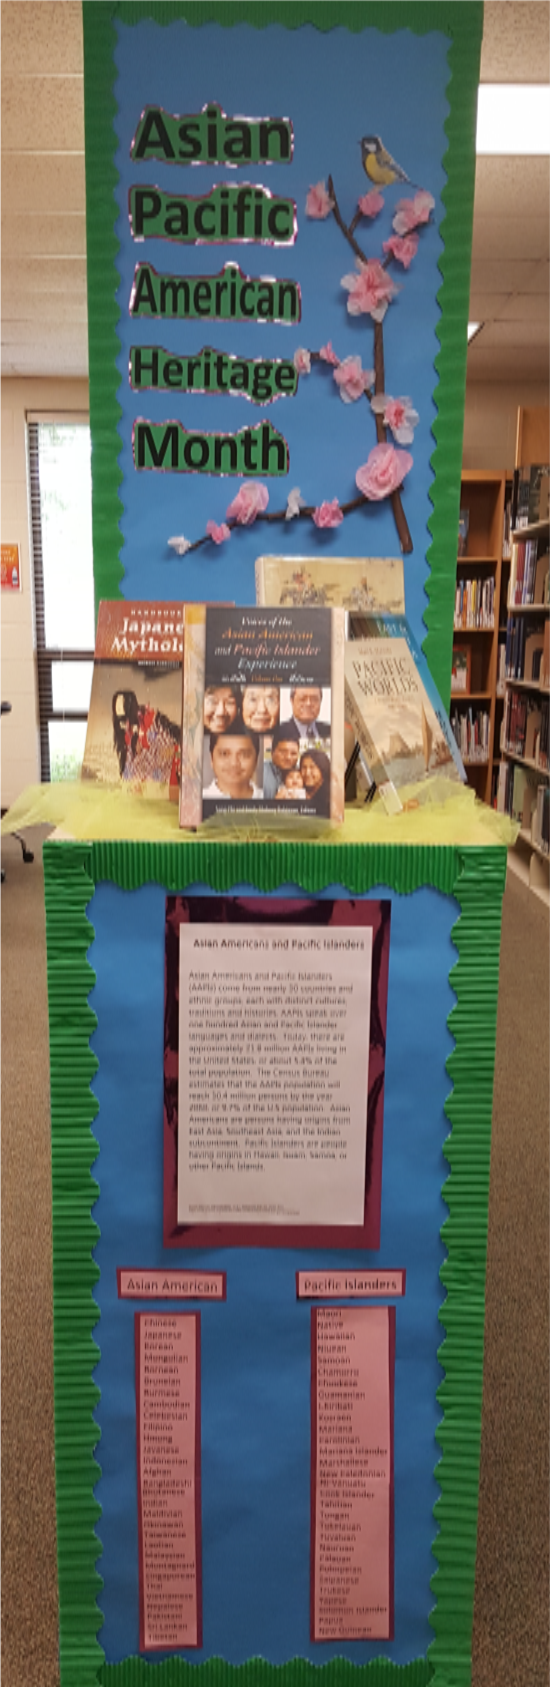 Asian Pacific Heritage Month Display, May 2017